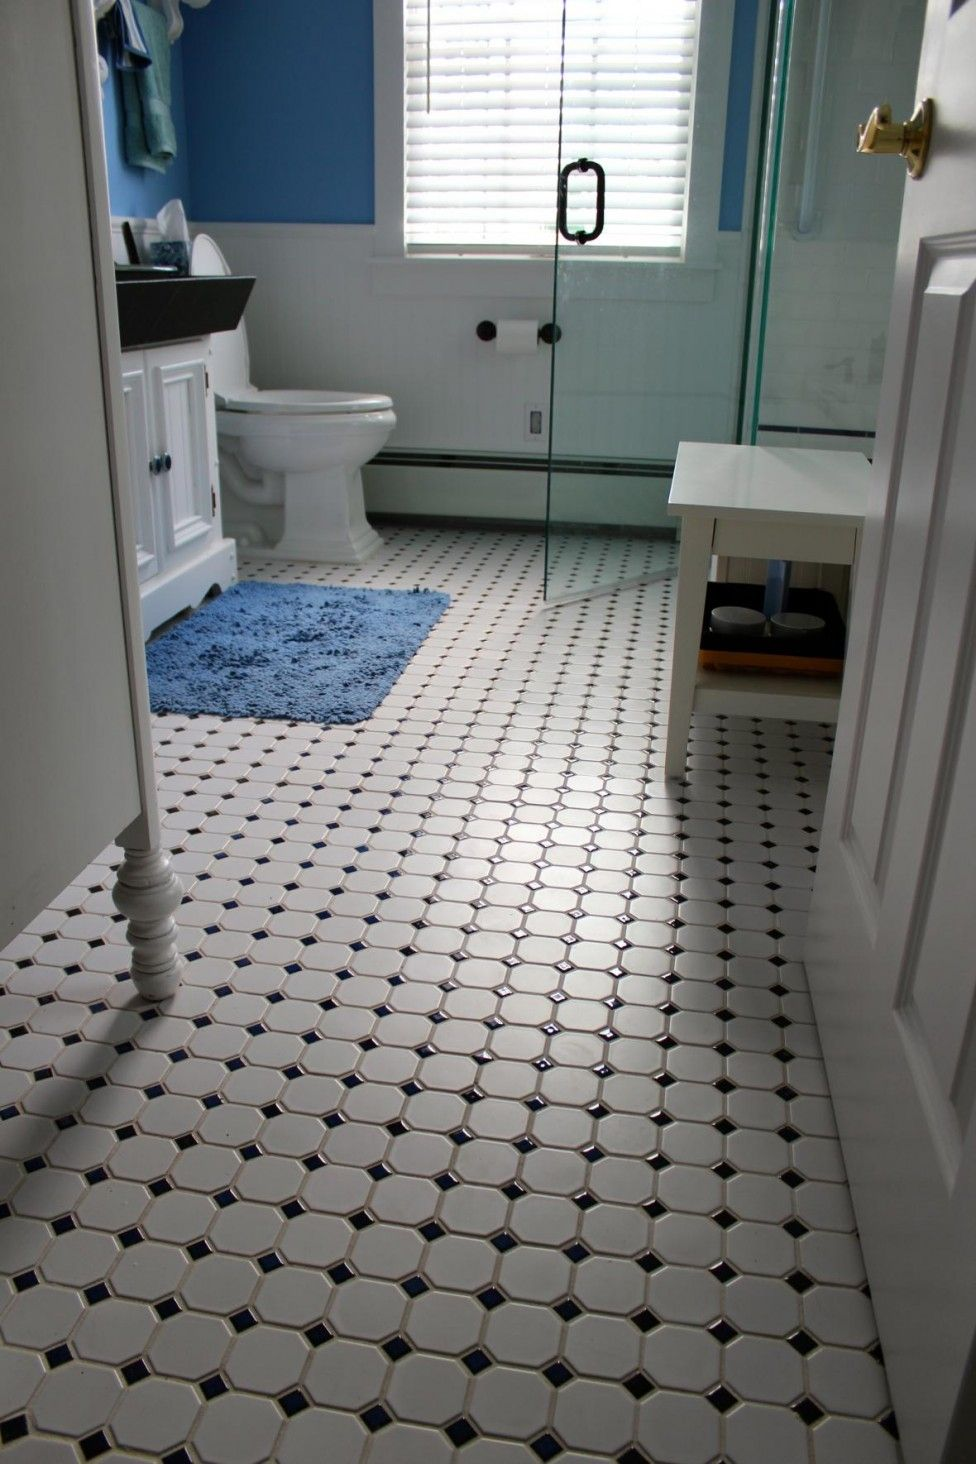 Appealing black and white bathrooms tile octagon with for Bathroom yiles